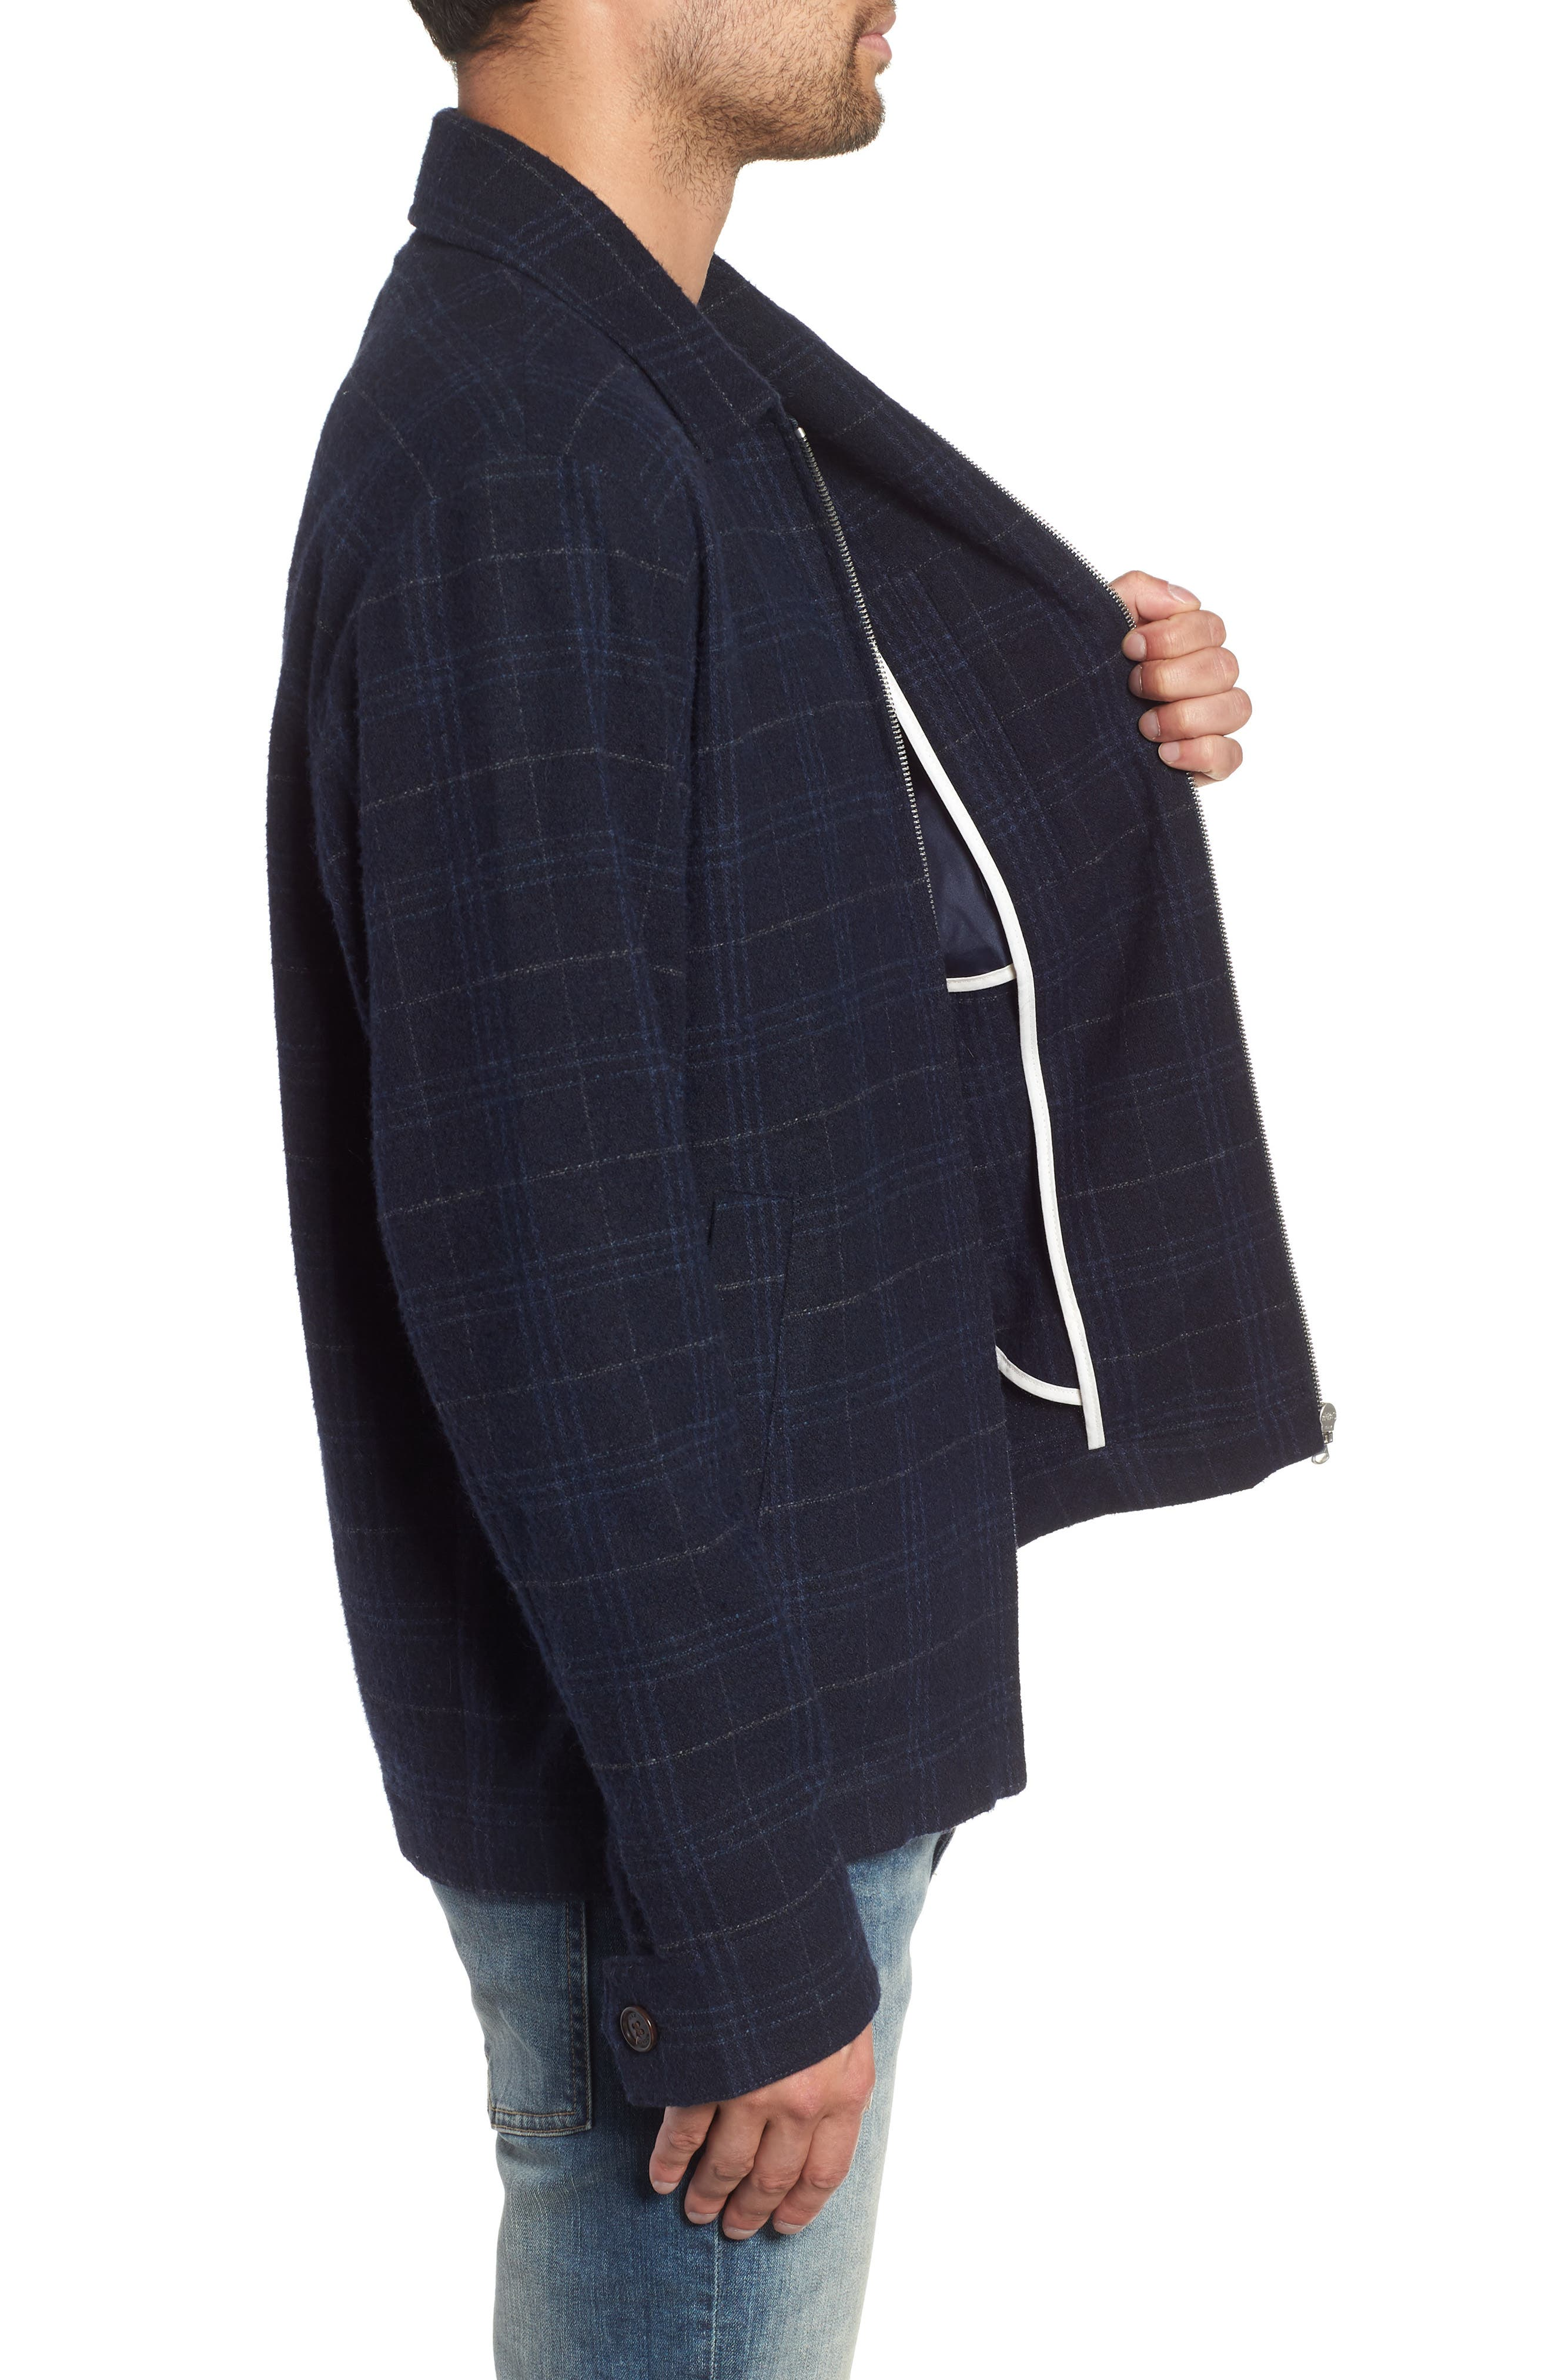 WAX LONDON,                             Witham Coach's Jacket,                             Alternate thumbnail 3, color,                             NAVY CHECK